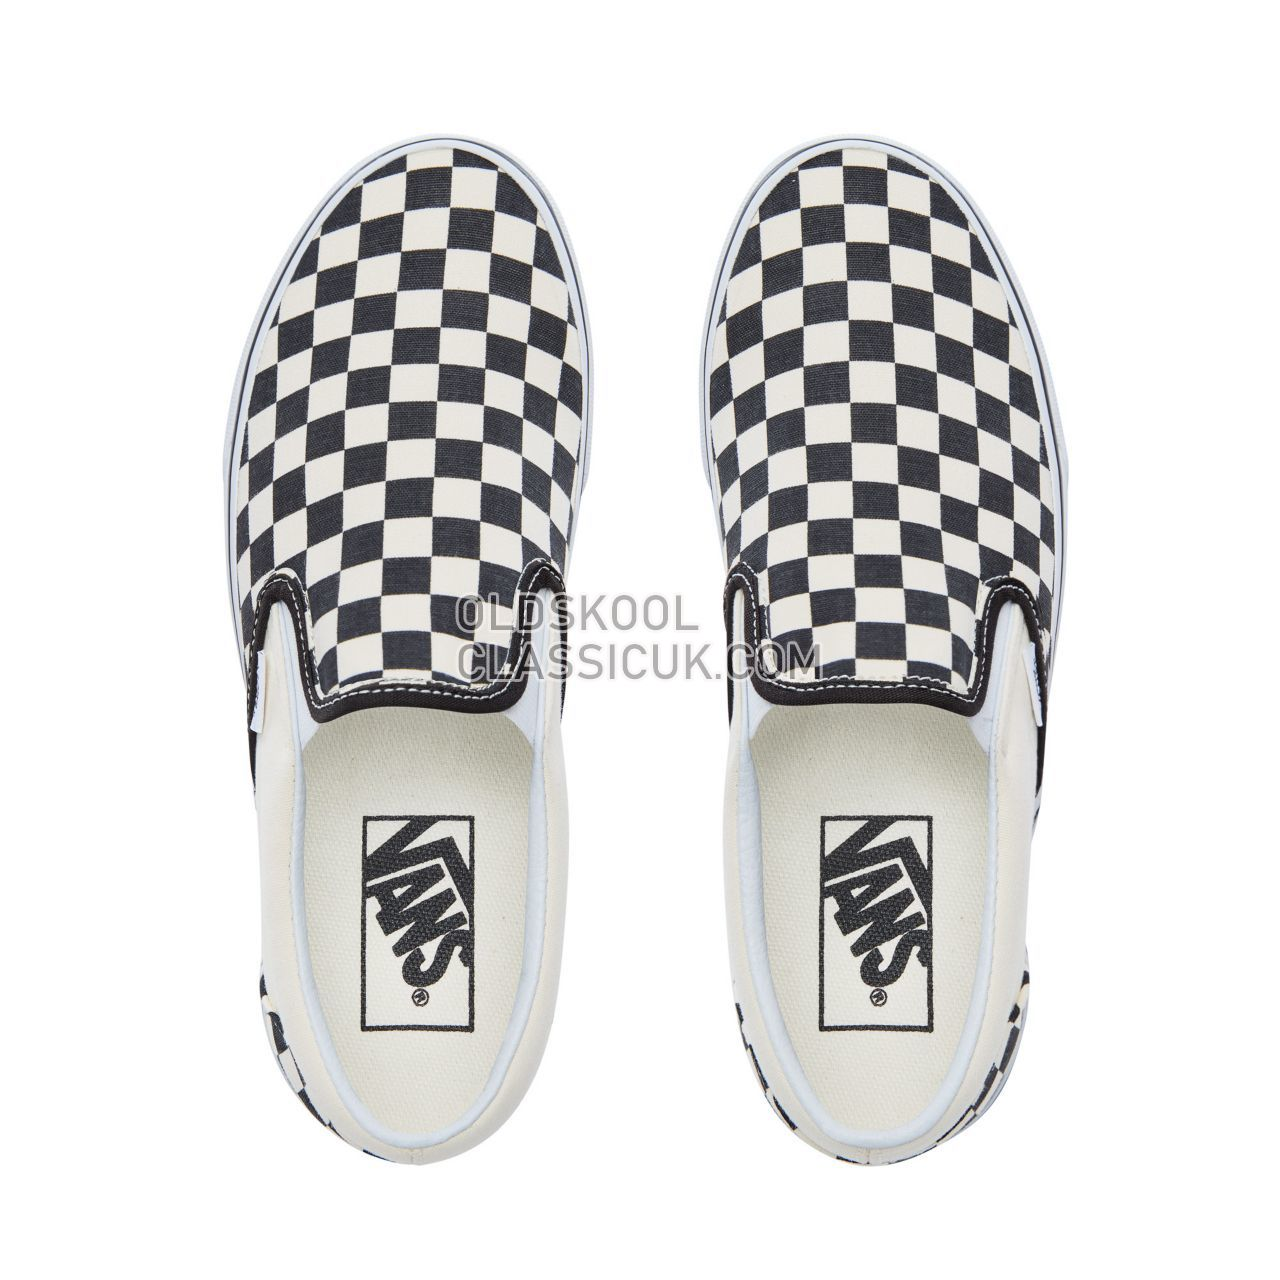 Vans Checkerboard Classic Slip-On Sneakers Mens Black and White Checker/White VN000EYEBWW Shoes